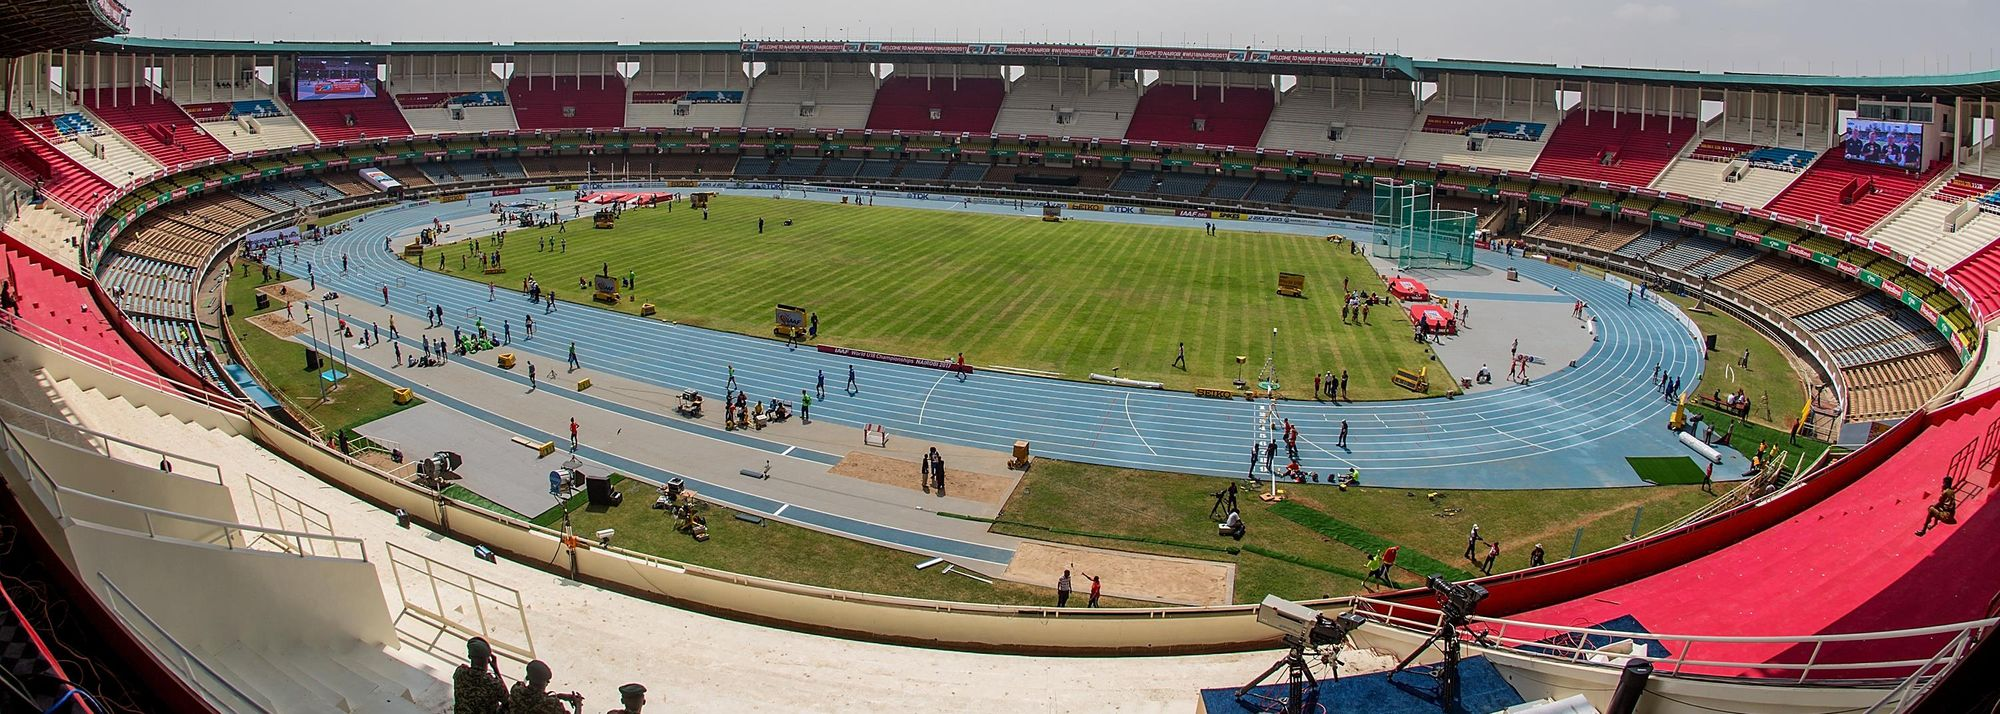 The World Athletics U20 Championships Nairobi 2020 will be the first global track and field championships where air quality will be measured and analysed.